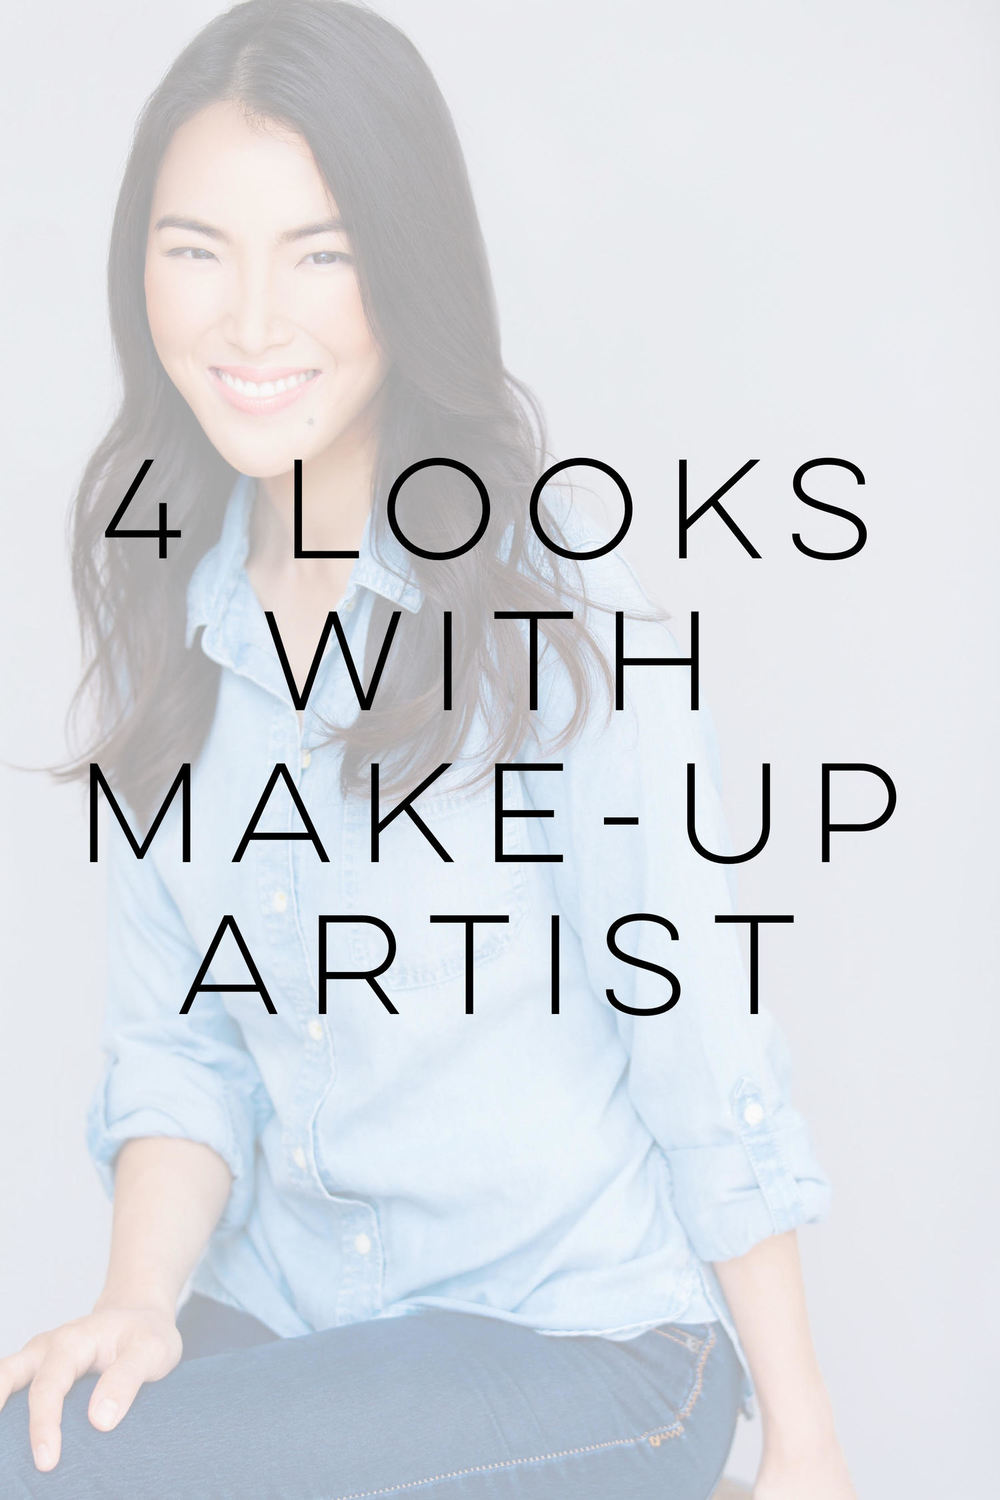 4 Looks WITH make up artist $250